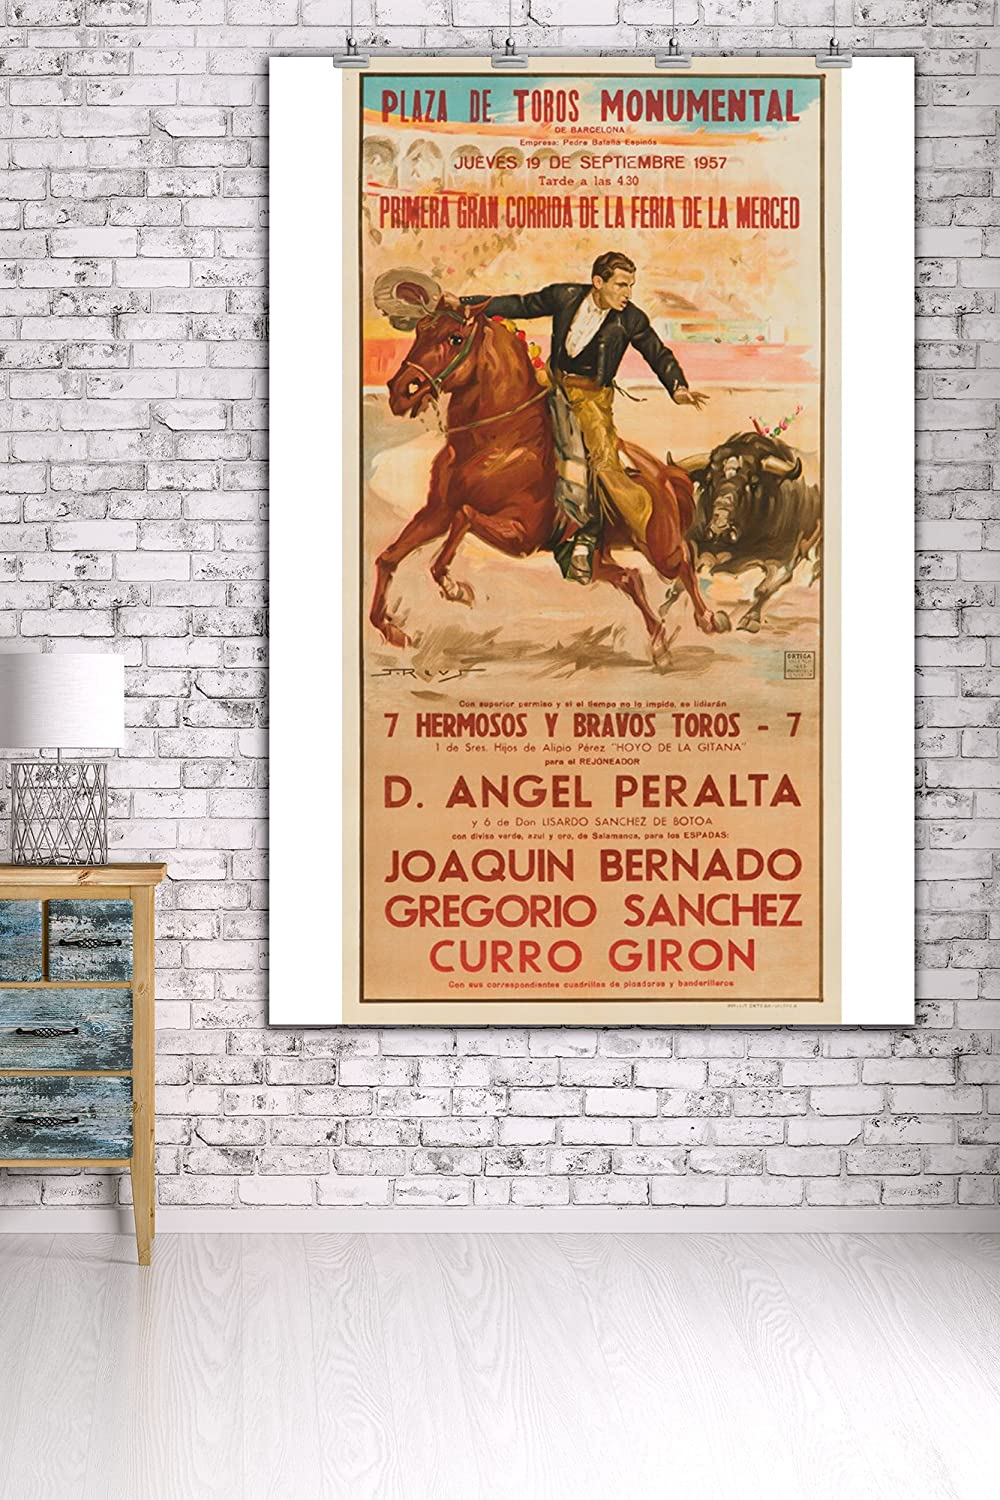 Amazon.com: Plaza de Toros Monumental Vintage Poster (artist: Reus) Spain c. 1957 (36x54 Giclee Gallery Print, Wall Decor Travel Poster): Posters & Prints